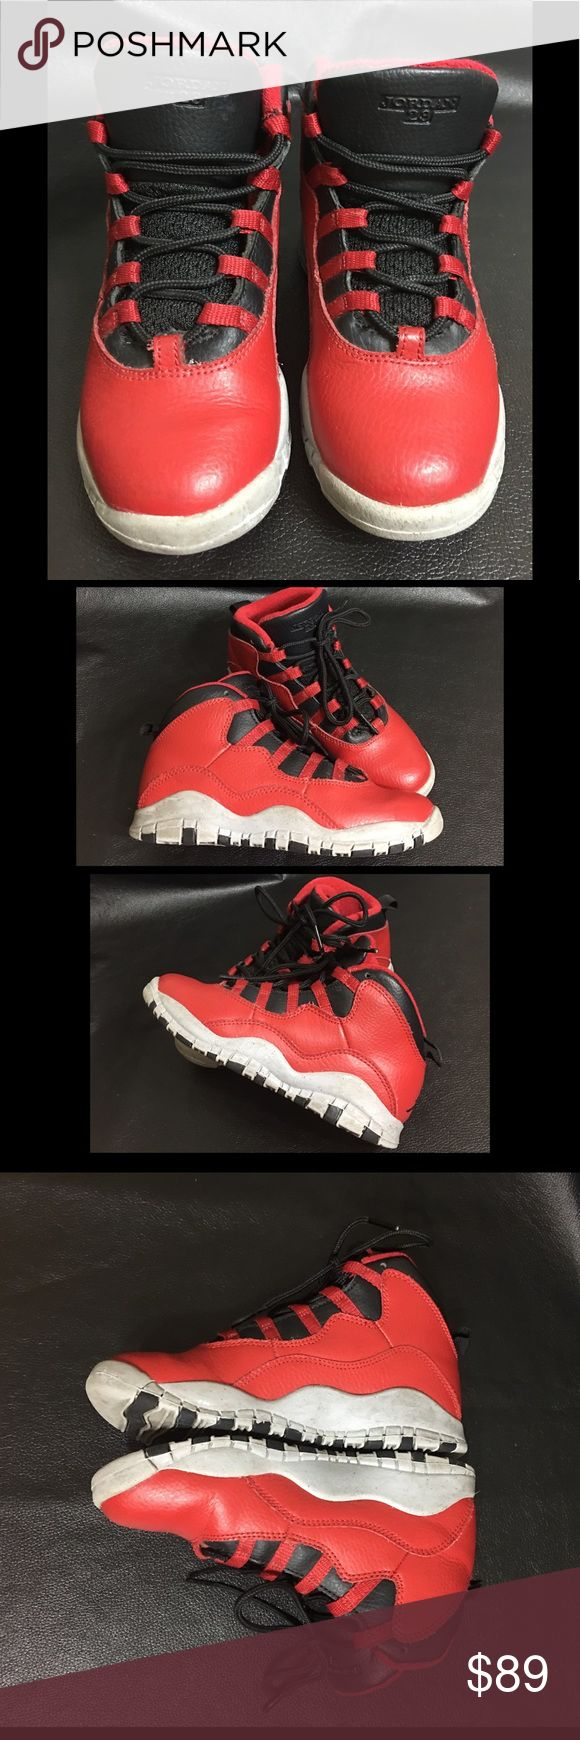 Nike Air Jordan Retro 10 X Bulls Over Broadway Authentic Nike Air Jordan Retro 10 X Bulls Over Broadway Gym Red  ·Material: upper leather  • Size US 13C / UK 12.5 EUR 31 CM 19 • Preloved / Lots of use left Nike Shoes Sneakers